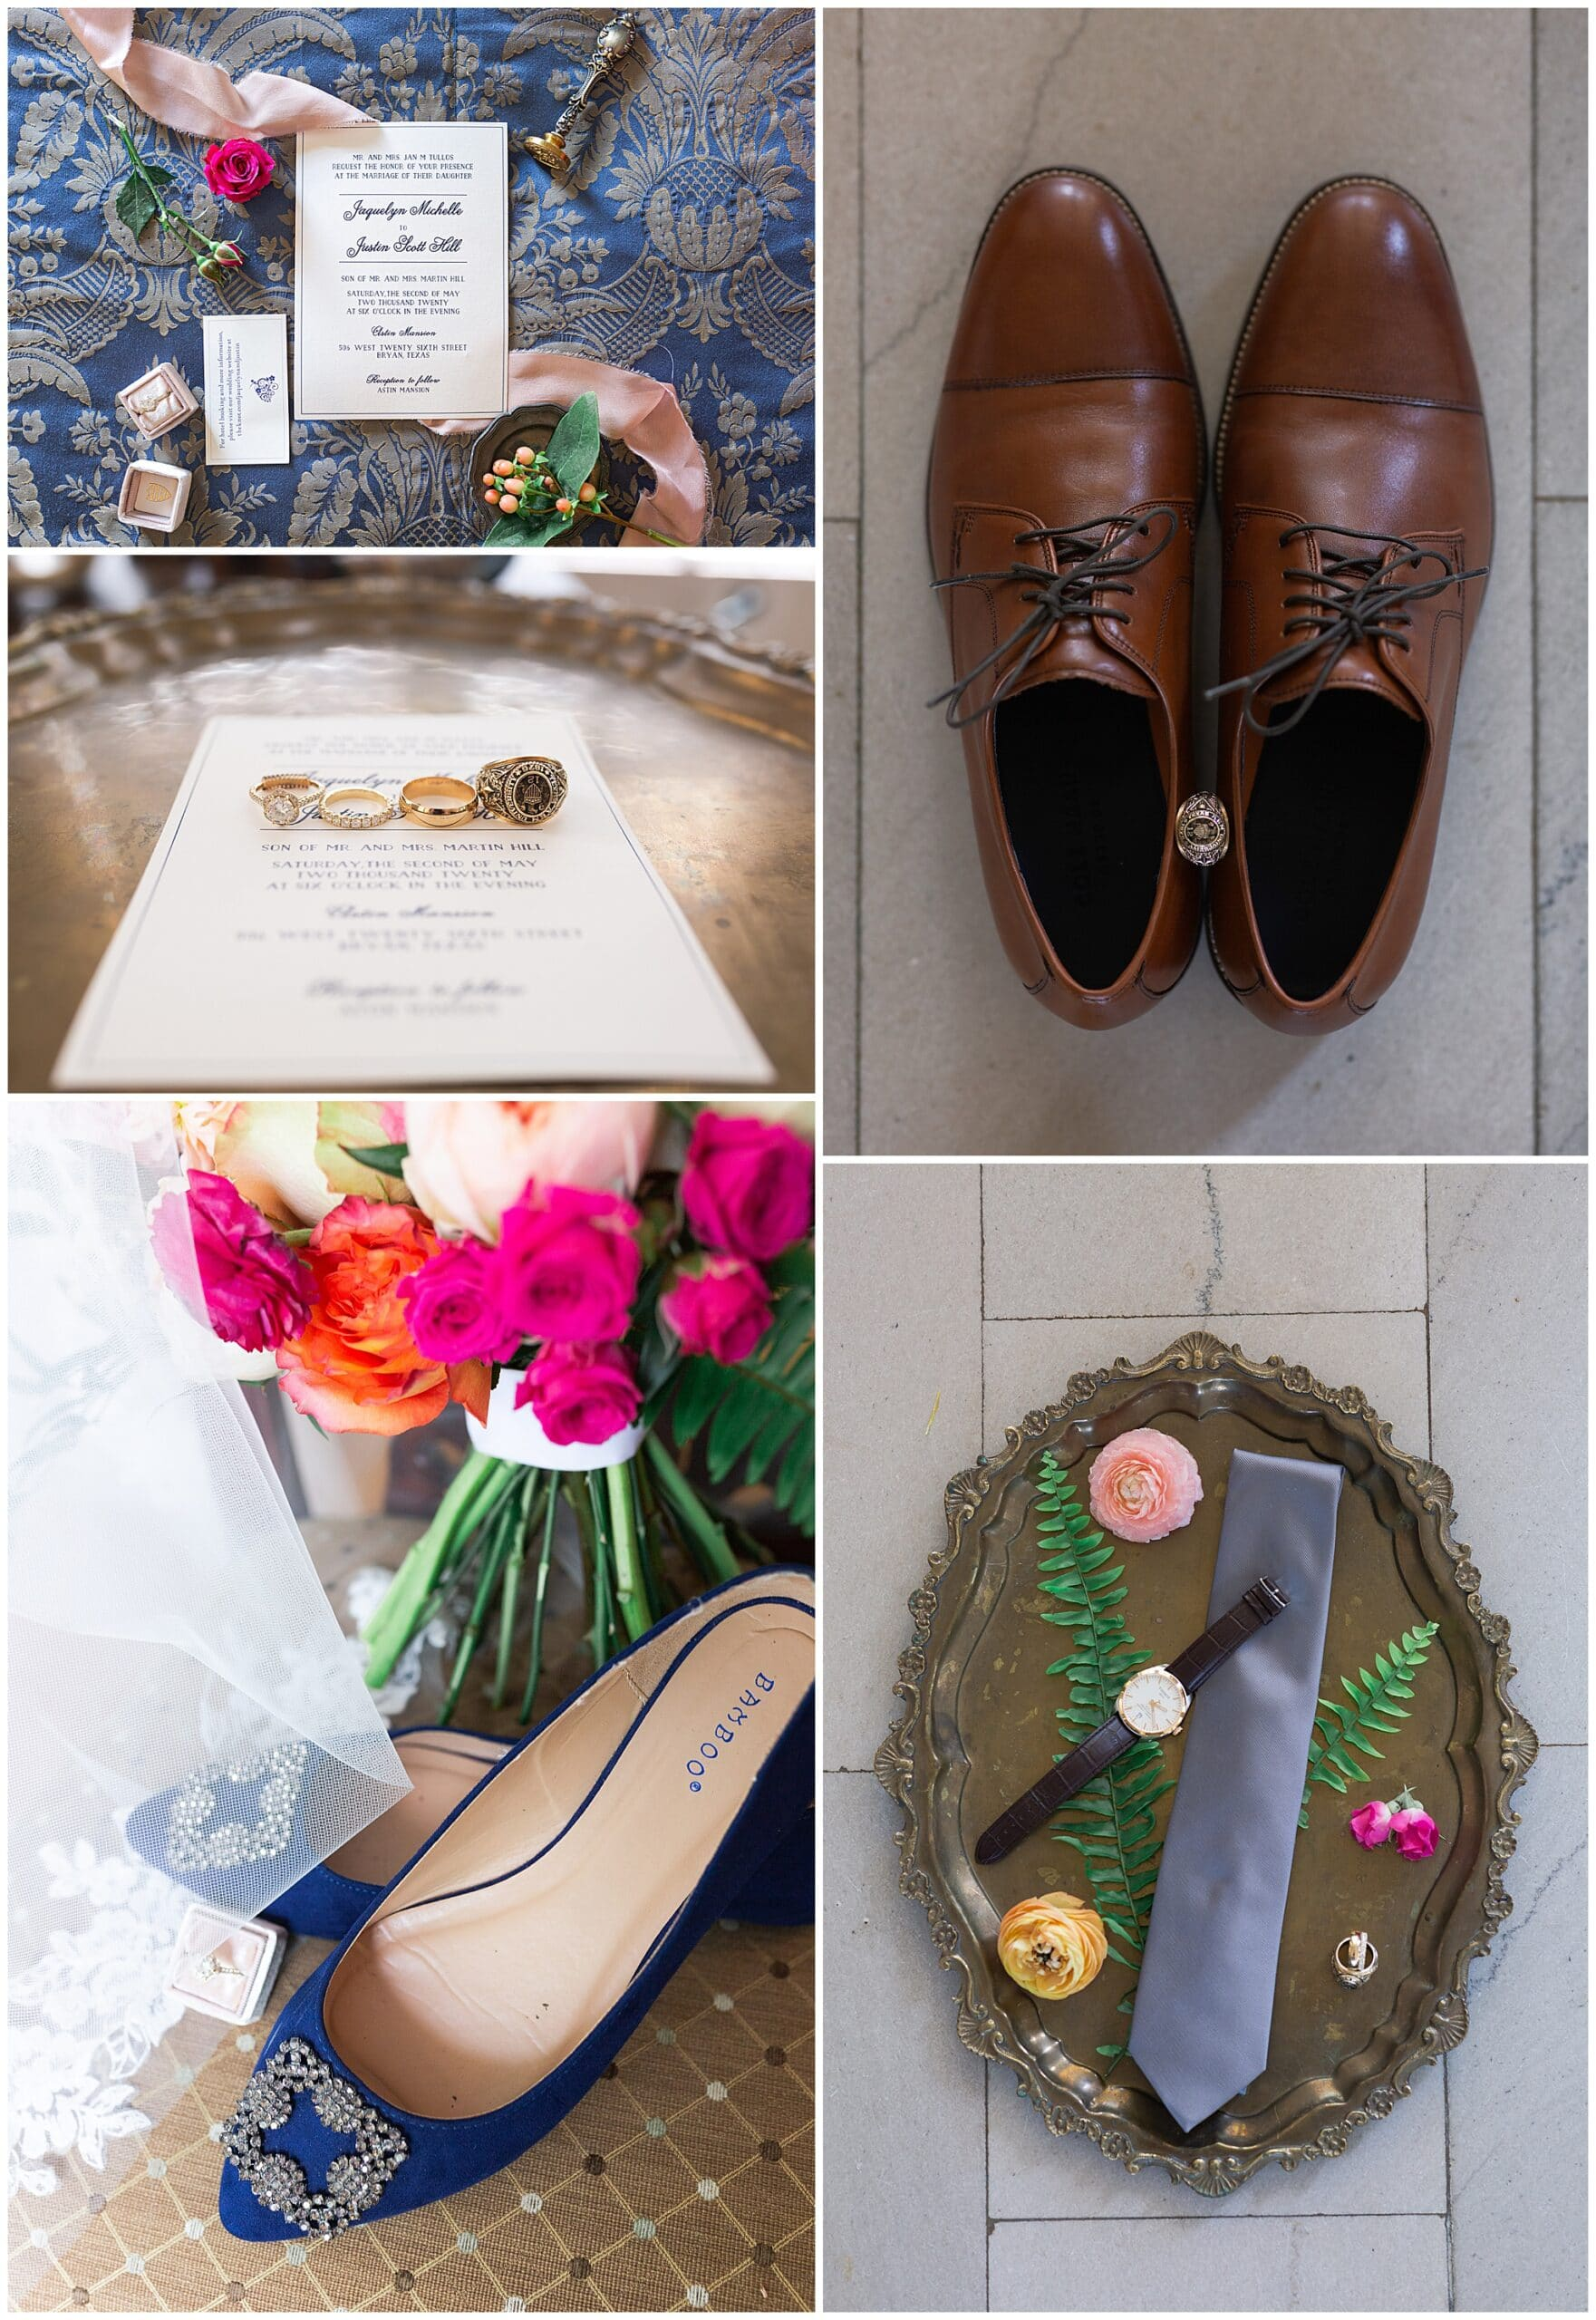 wedding invitation, shoes, tie and rings by Swish and Click Photography